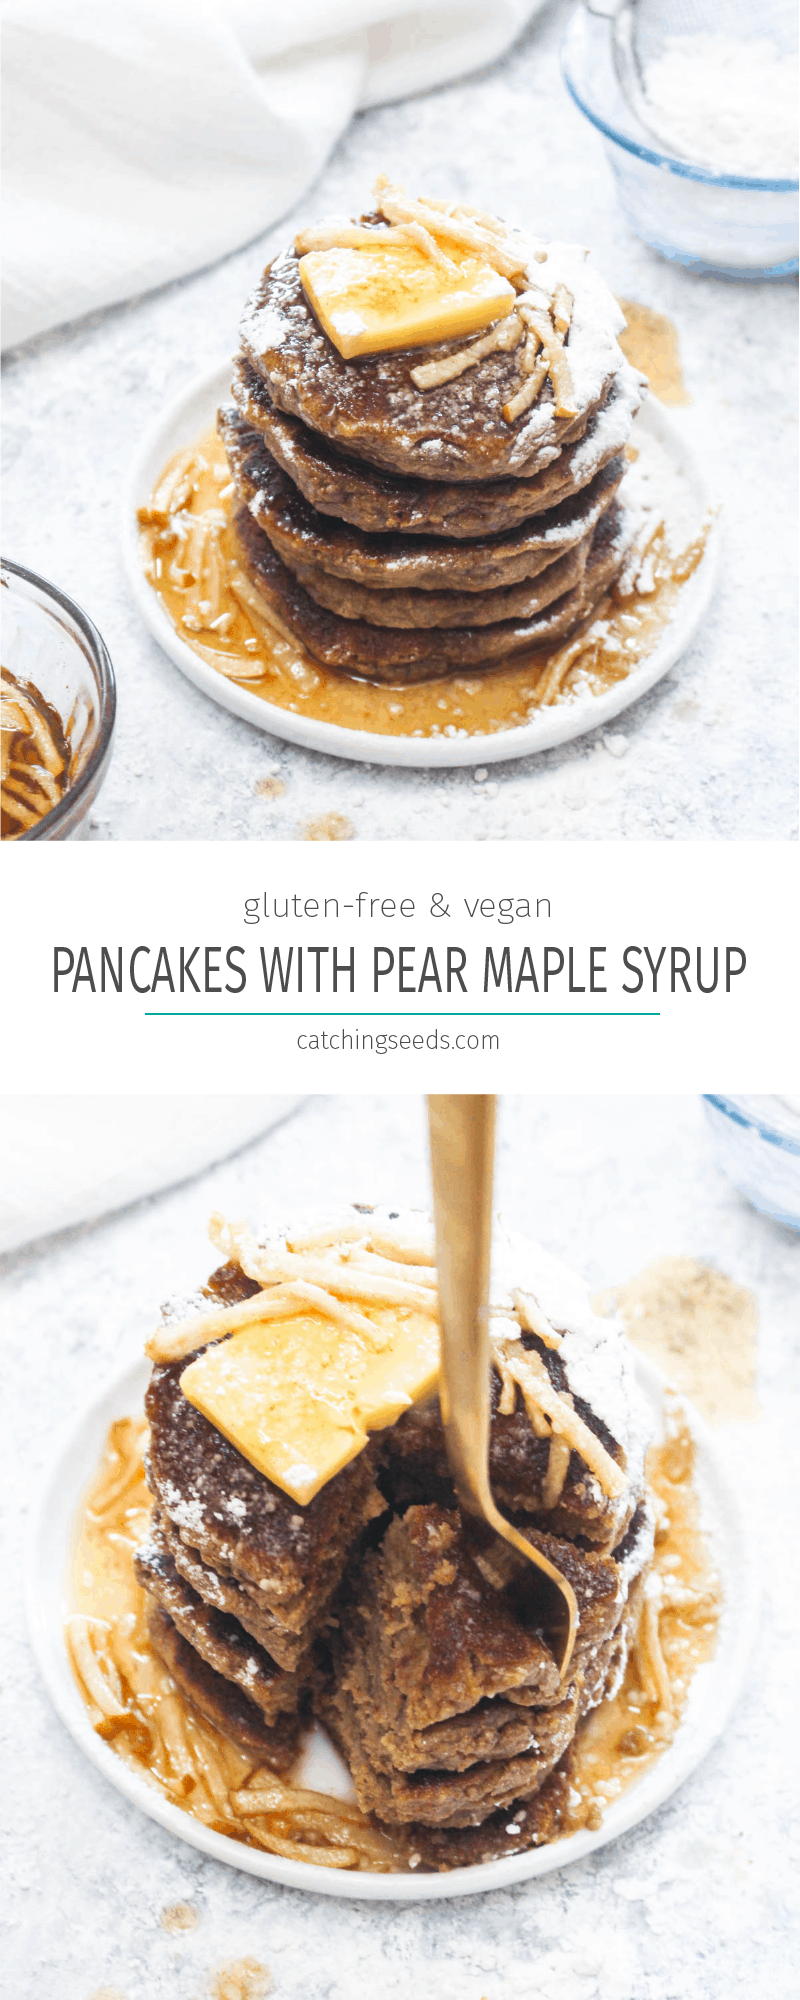 Cinnamon Pancakes with Pear Maple Syrup are a light and fluffy gluten free and vegan pancake recipe! This healthy breakfast gets smothered in a 10 minute holiday spiced syrup. Allergy friendly pancakes are hard to make! They are often gummy and flat, but this easy recipe uses a few secret ingredients to make perfect pancakes every time! | CatchingSeeds.com